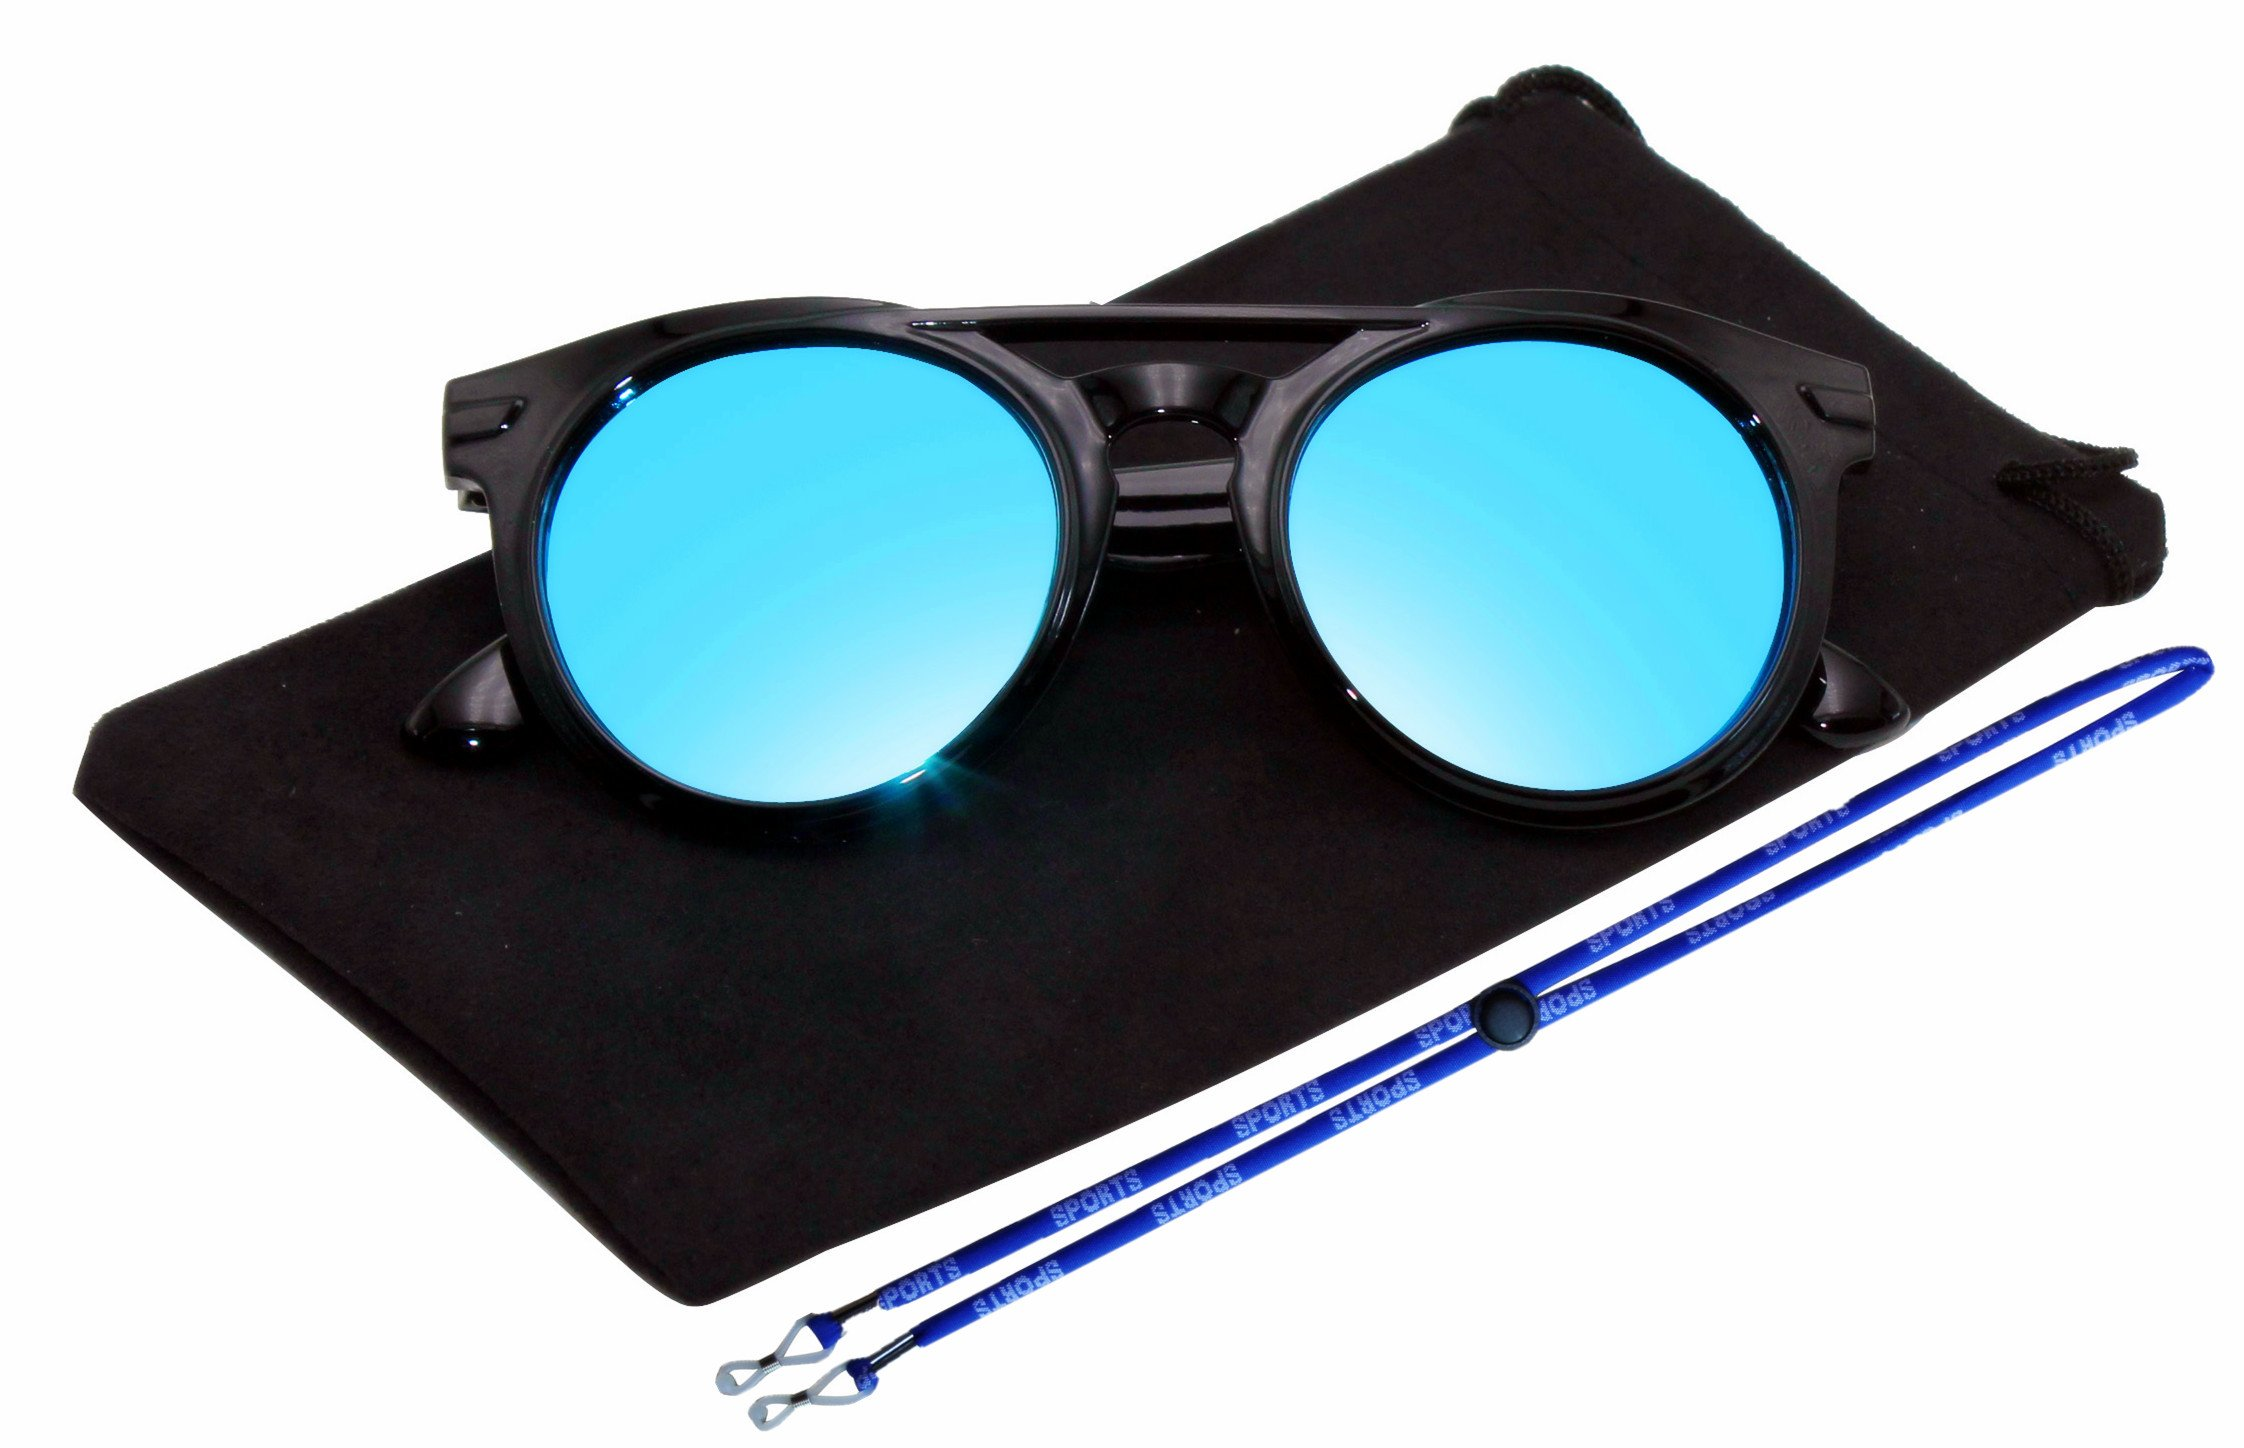 Coolsome Rubber Flexible Kids Polarized Sunglasses For Boys Girls Children With Strap Age 3-10 Years Old (Cat eye Black B)